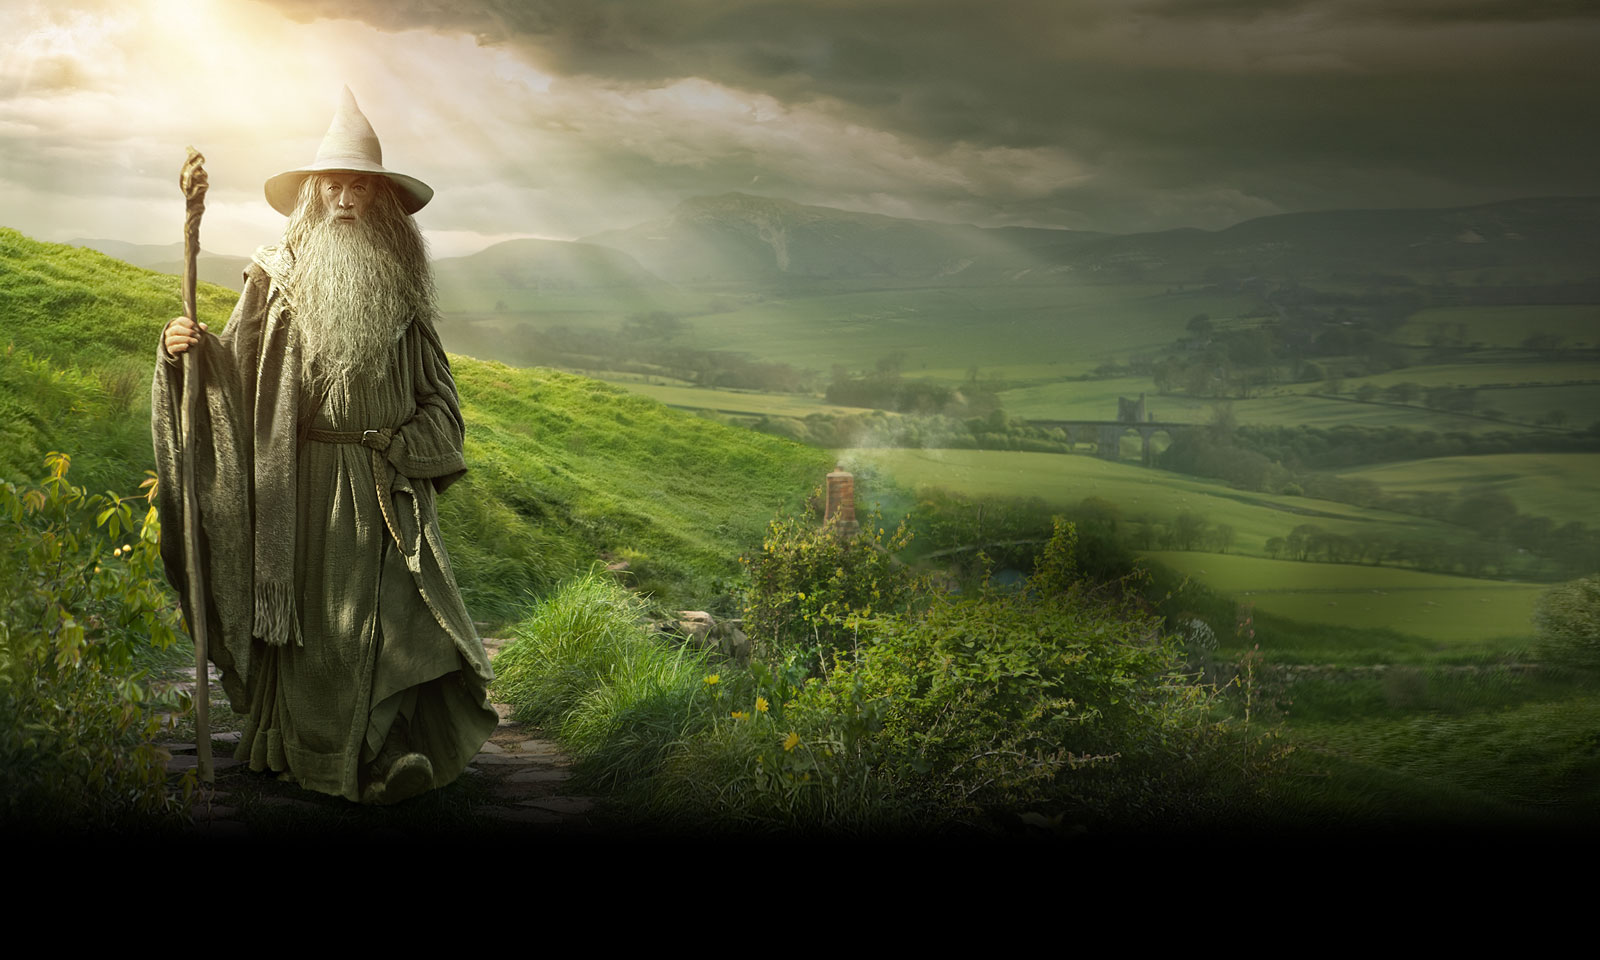 The Eccentric Realist Movie Review The Hobbit 1600x960